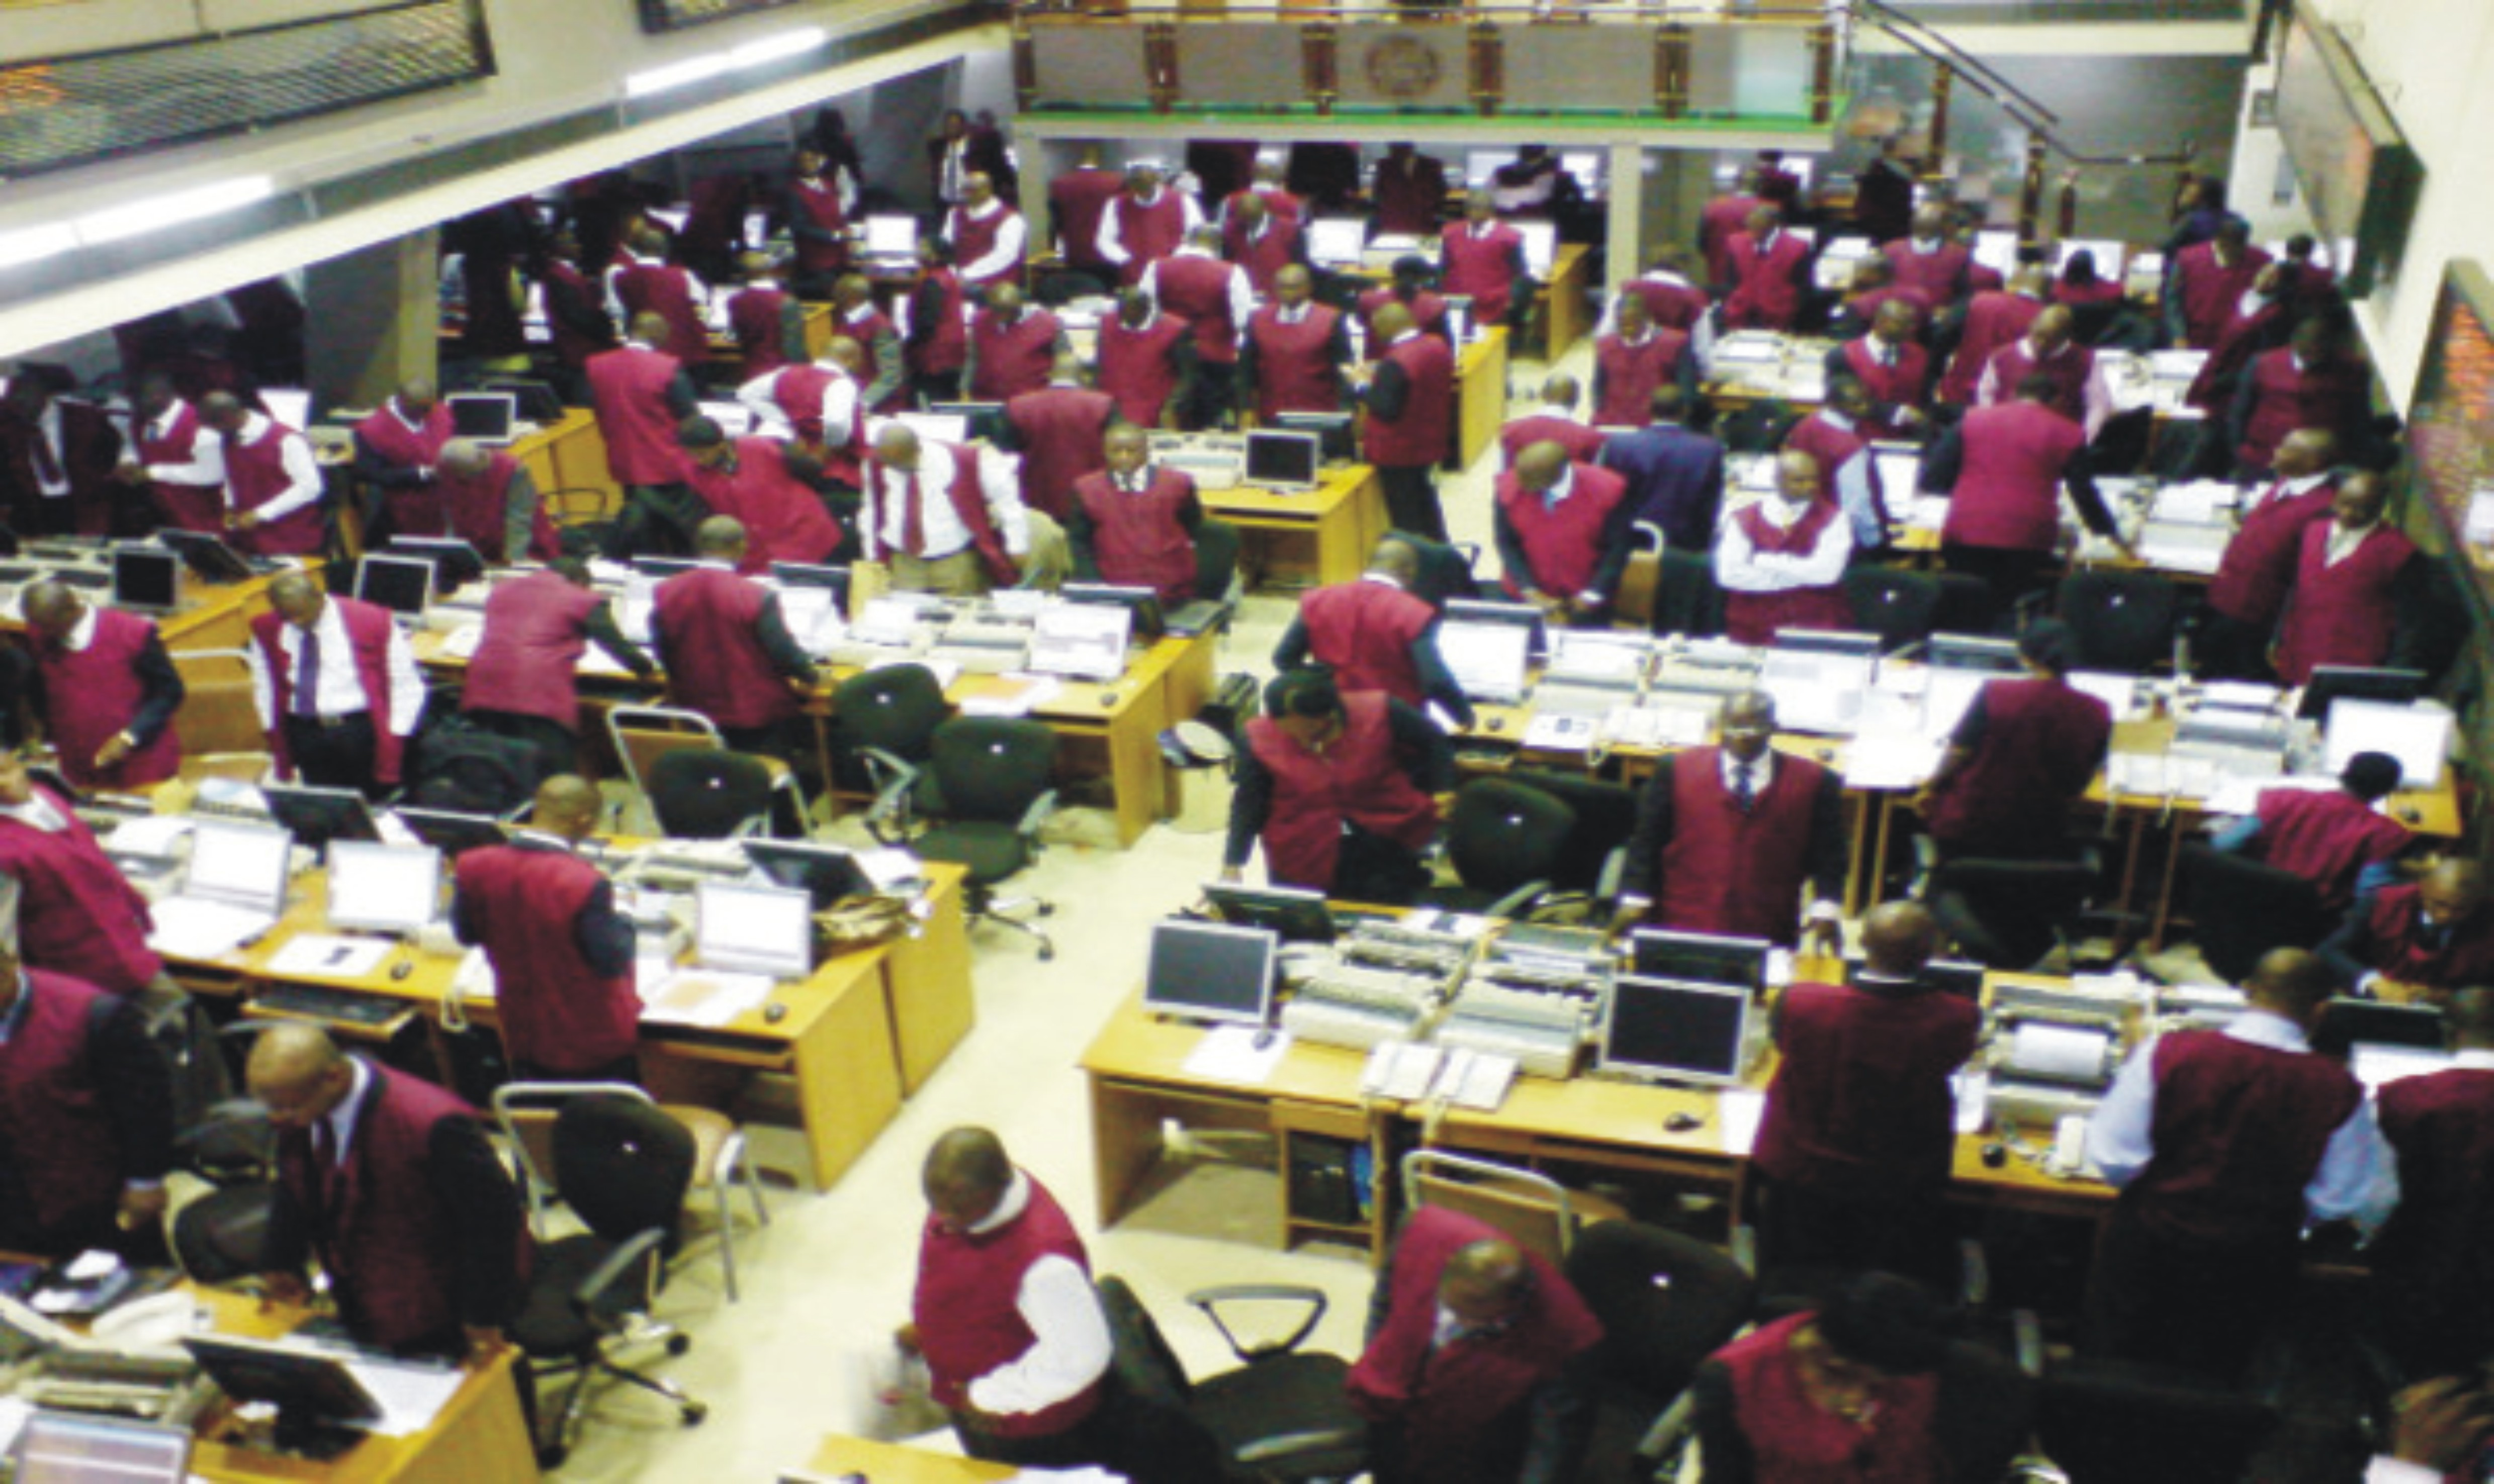 Stock market lost N1.732tn in one year under Buhari's government